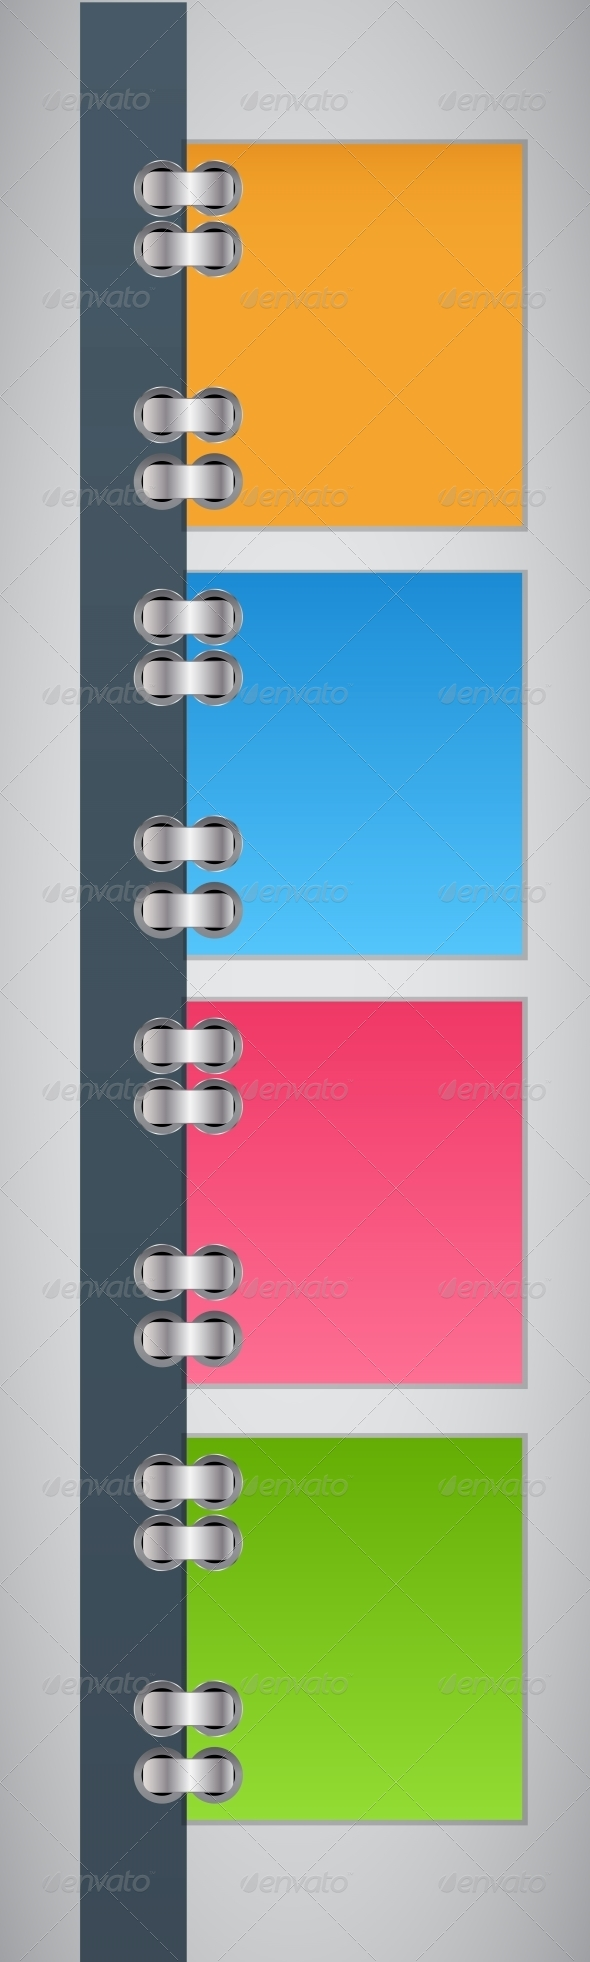 GraphicRiver Infographic Template 4565721